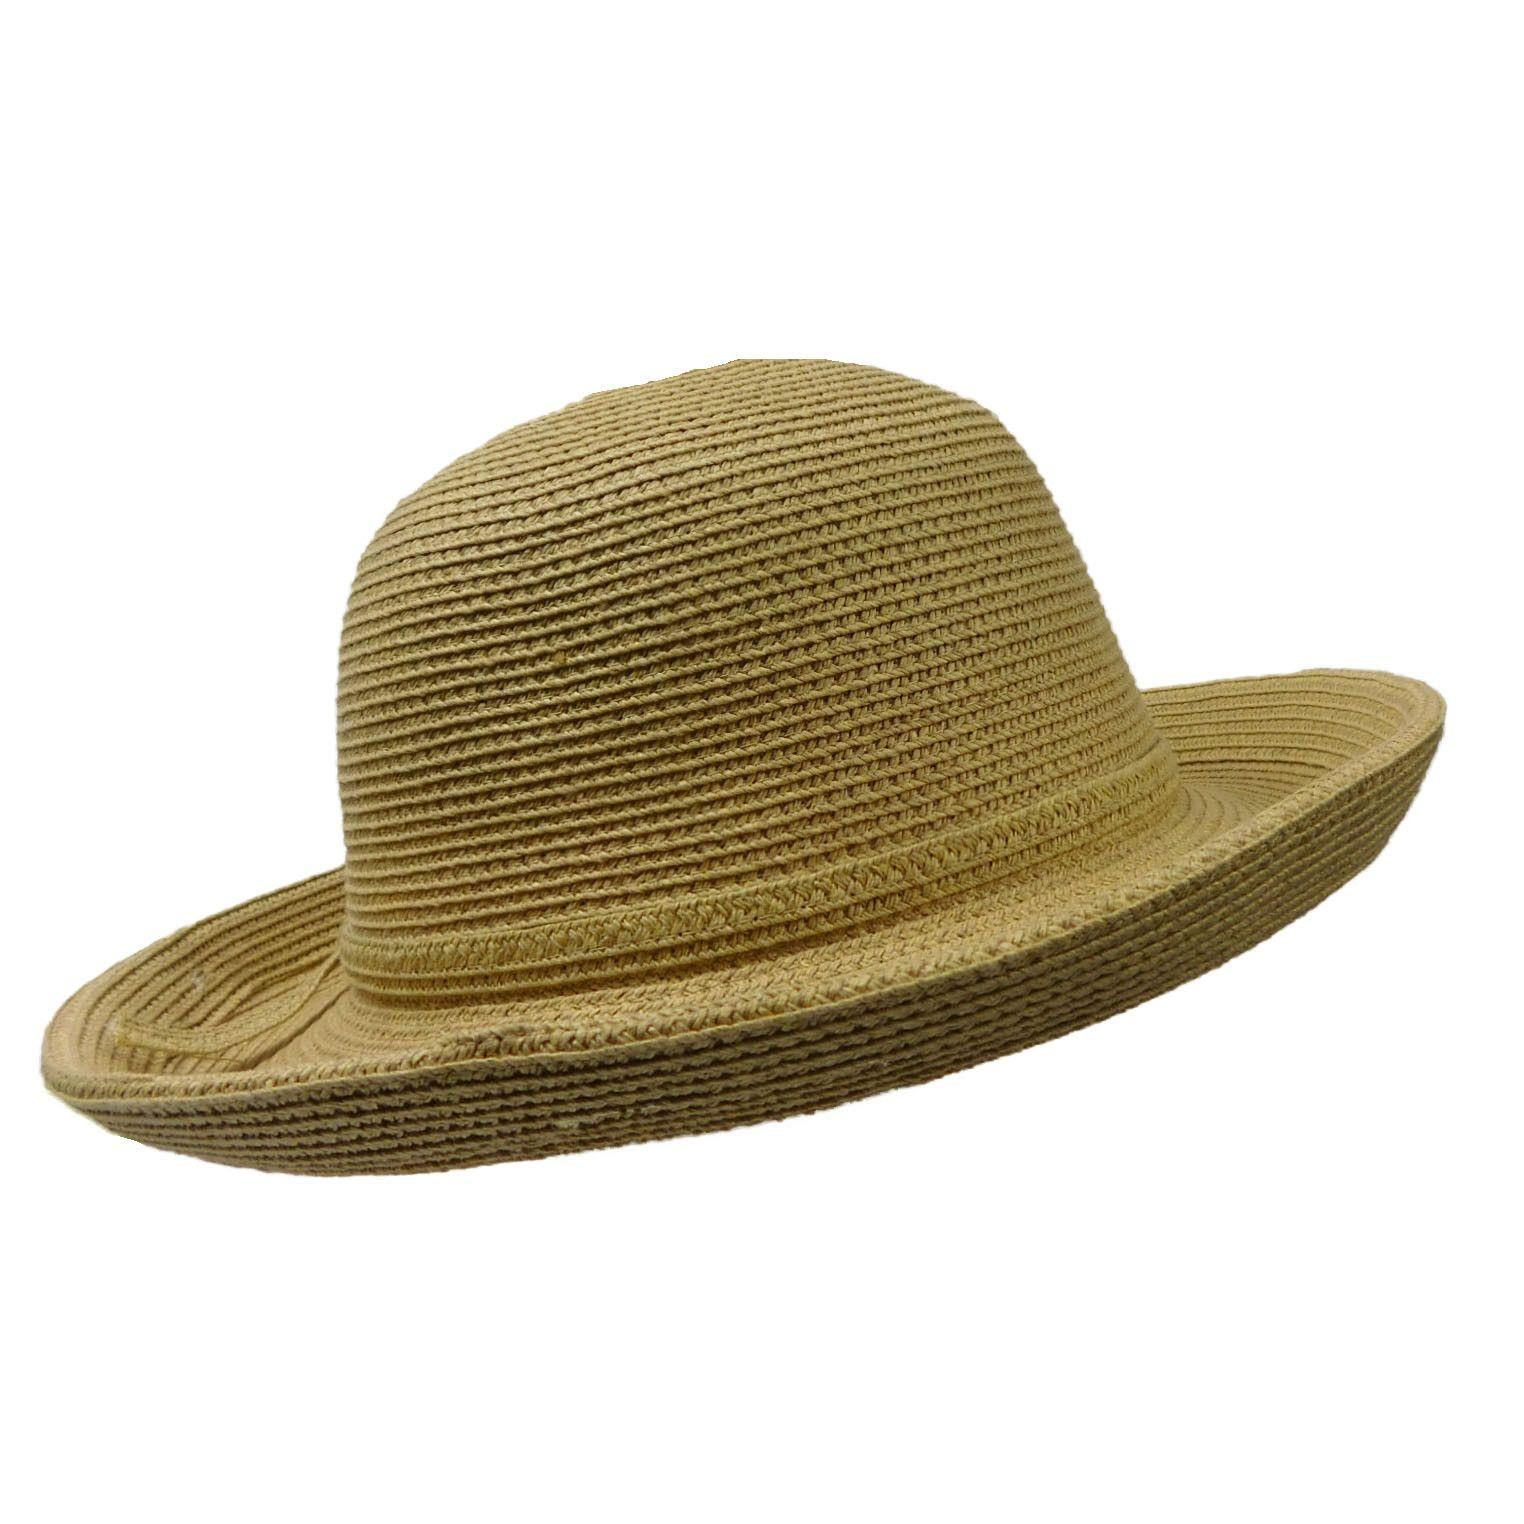 fedora girls Online shopping a variety of best girl fedora wholesale at dhgatecom enjoy fast delivery, best quality and cheap price.